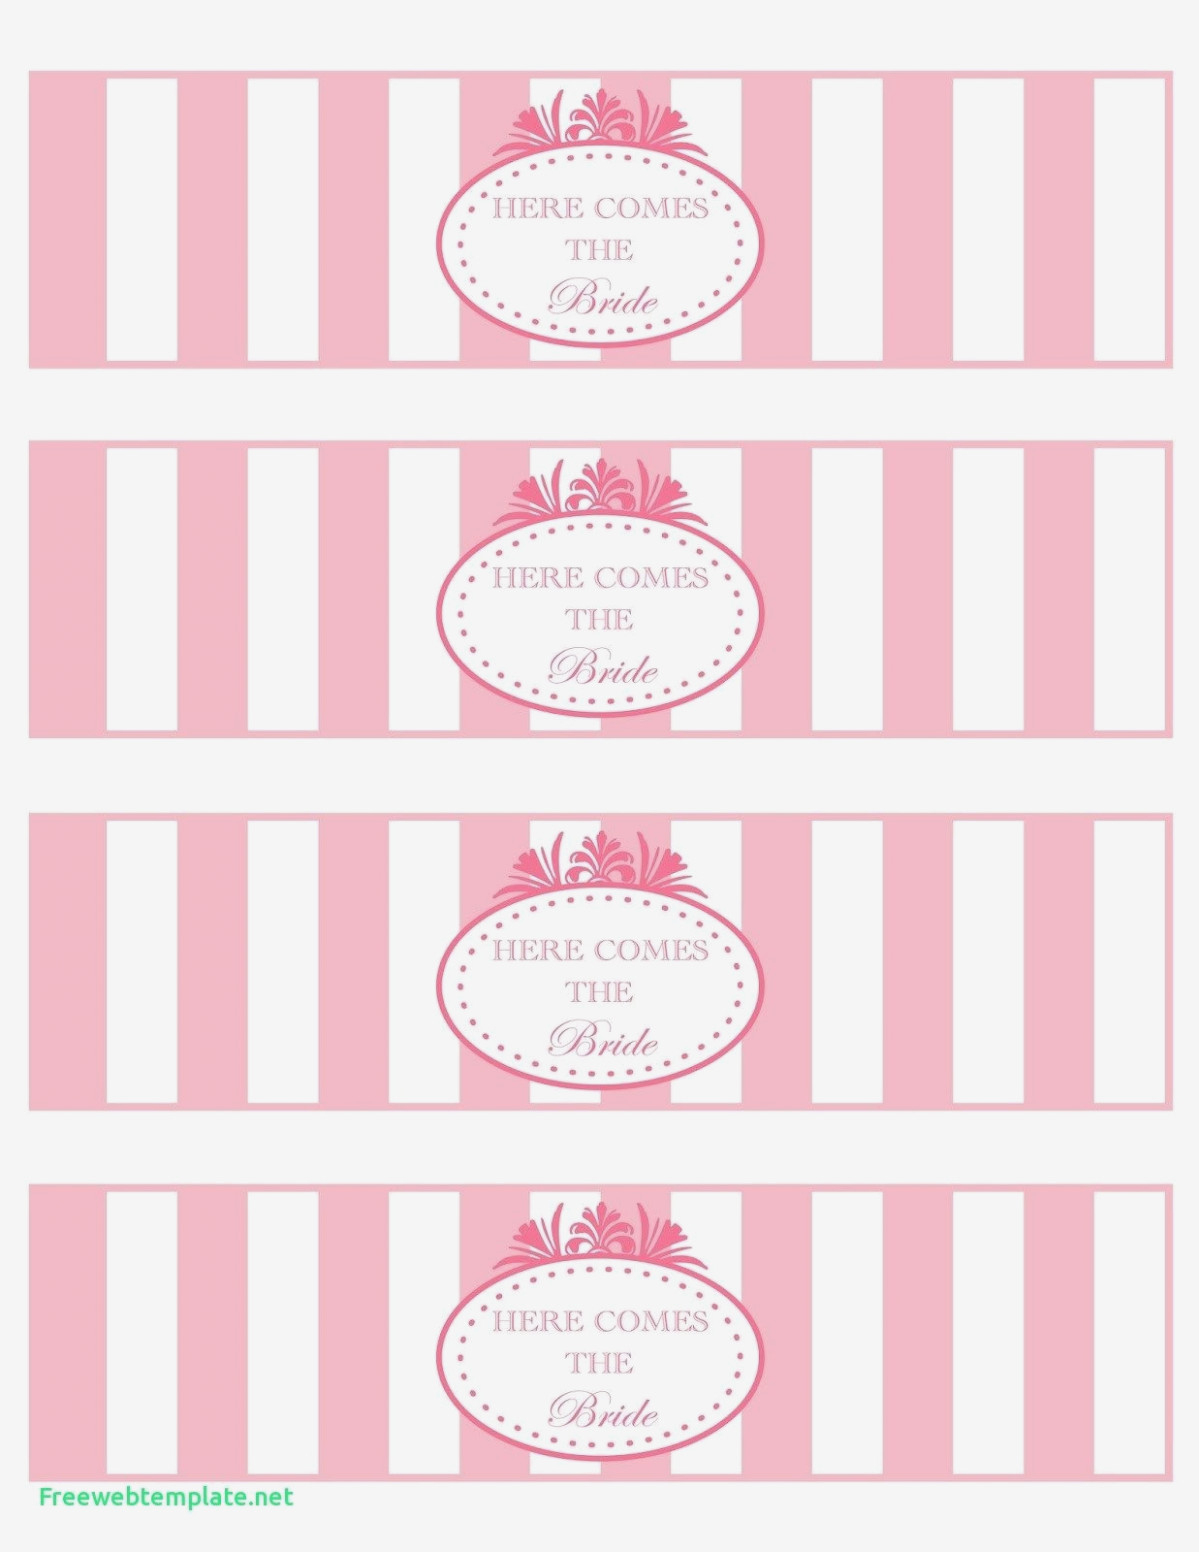 Free Printable Water Bottle Labels For Baby Shower – Hola.klonec - Free Printable Water Bottle Labels